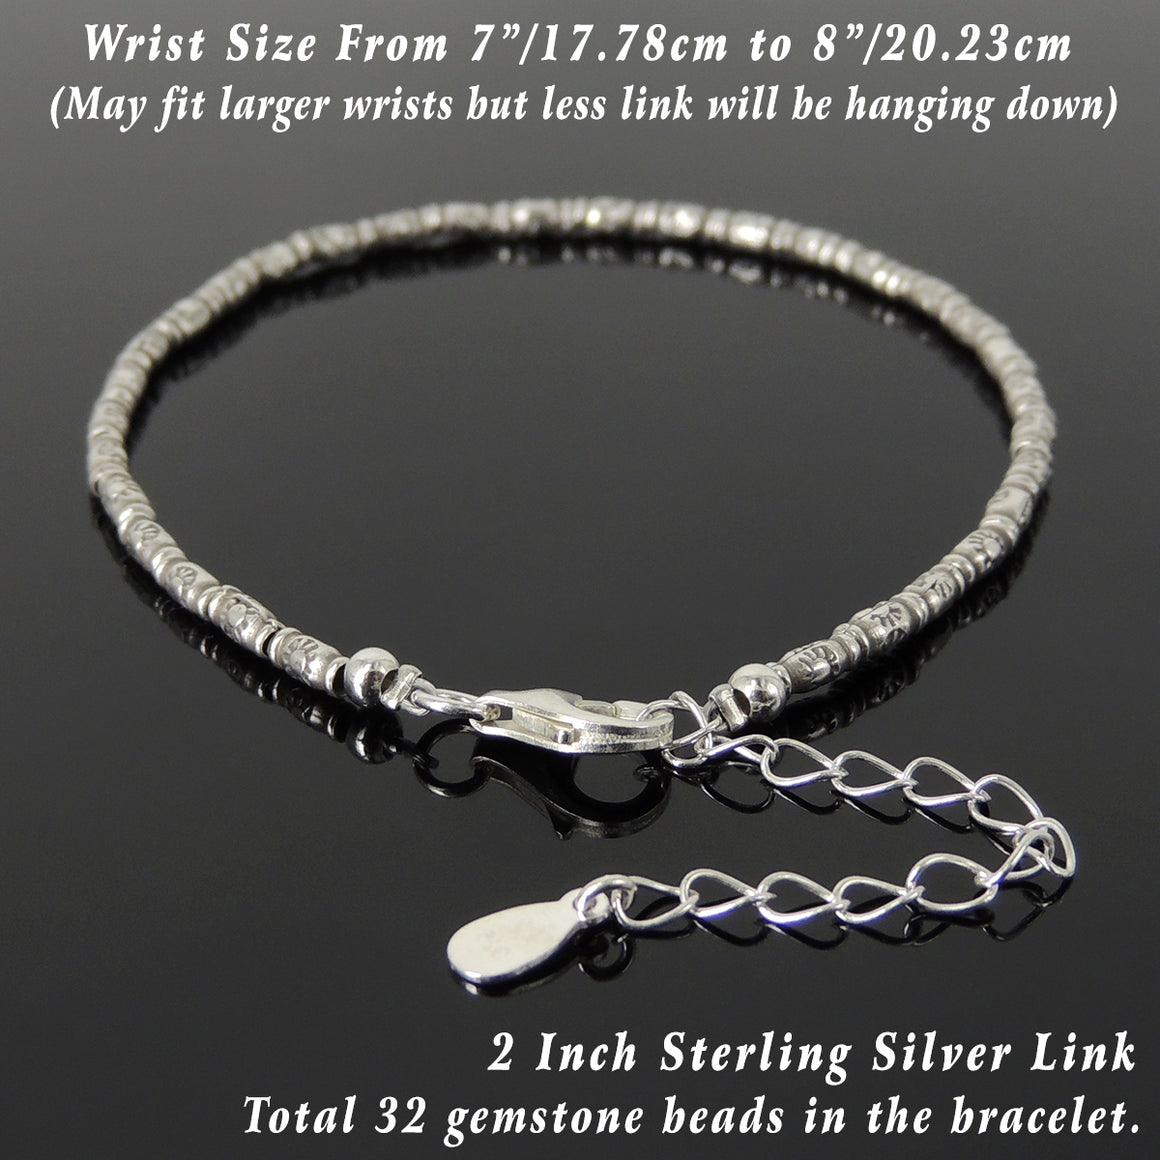 S925 Sterling Silver Healing Bracelet with Vintage Sun Barrel Beads, Chain, & Clasp - Handmade by Gem & Silver BR1282